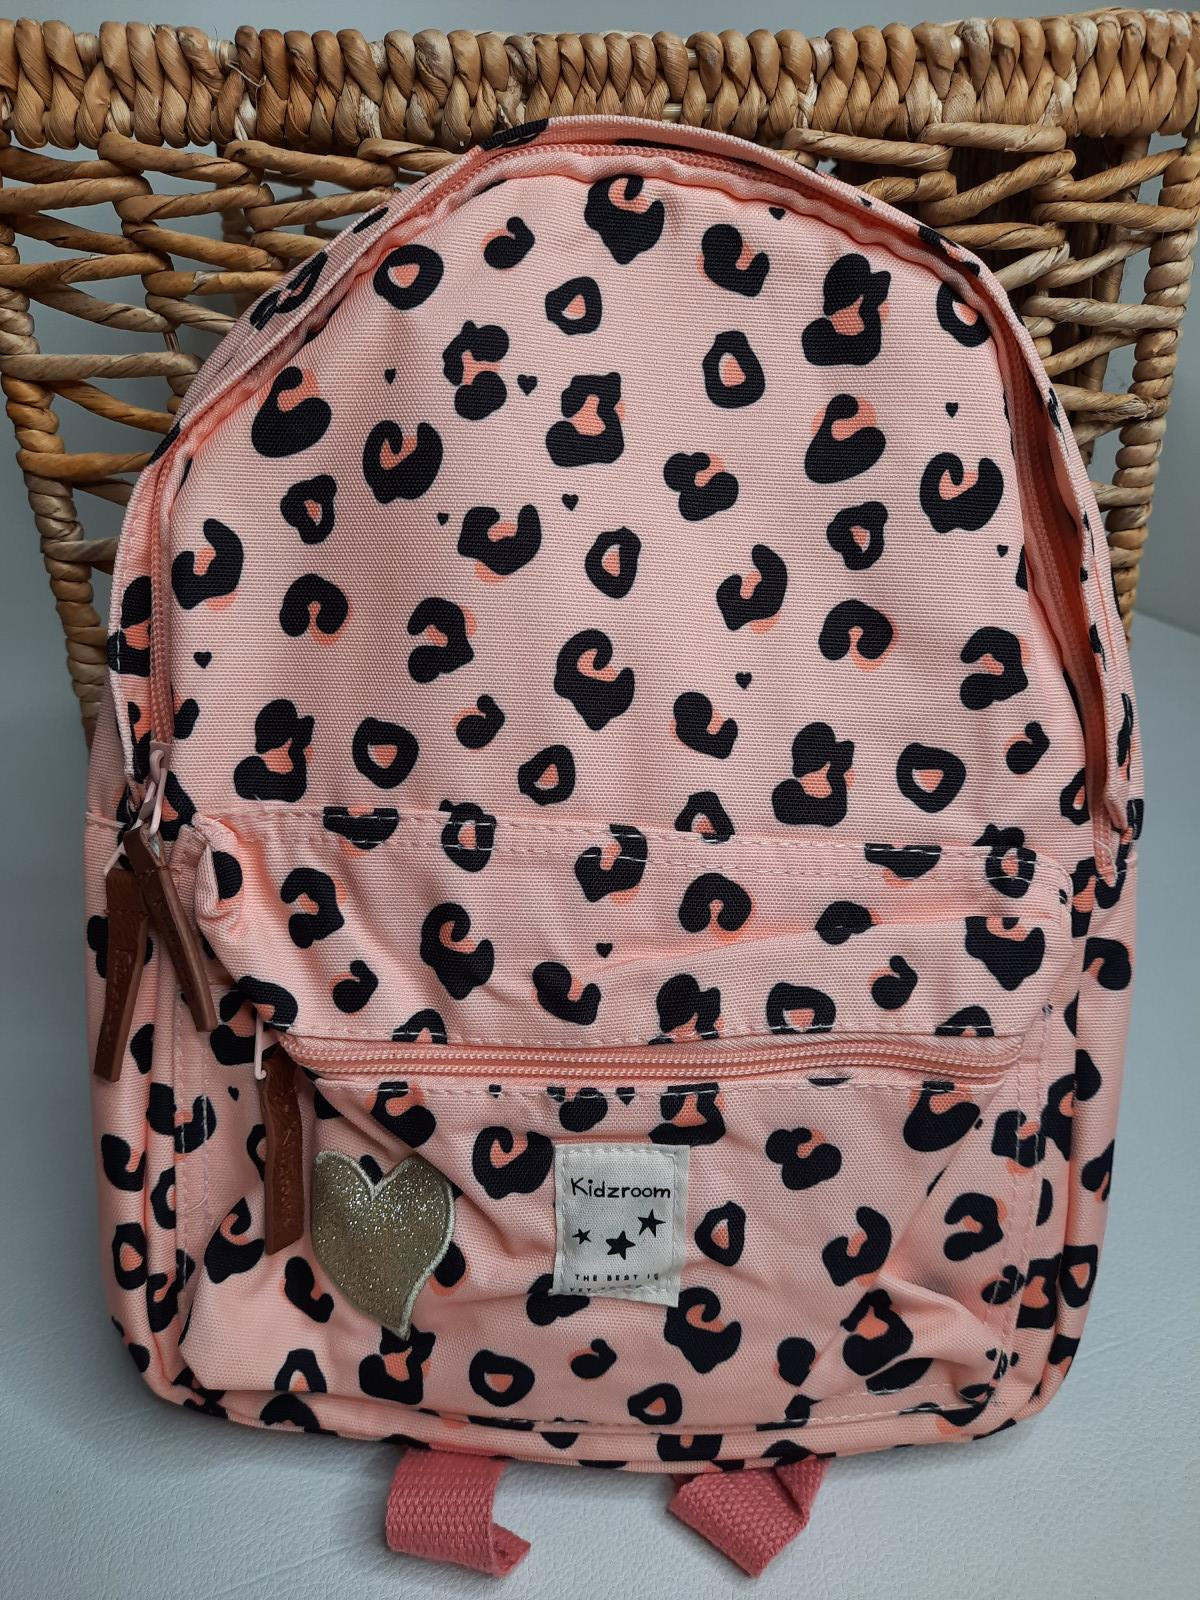 Cartable - photo 16